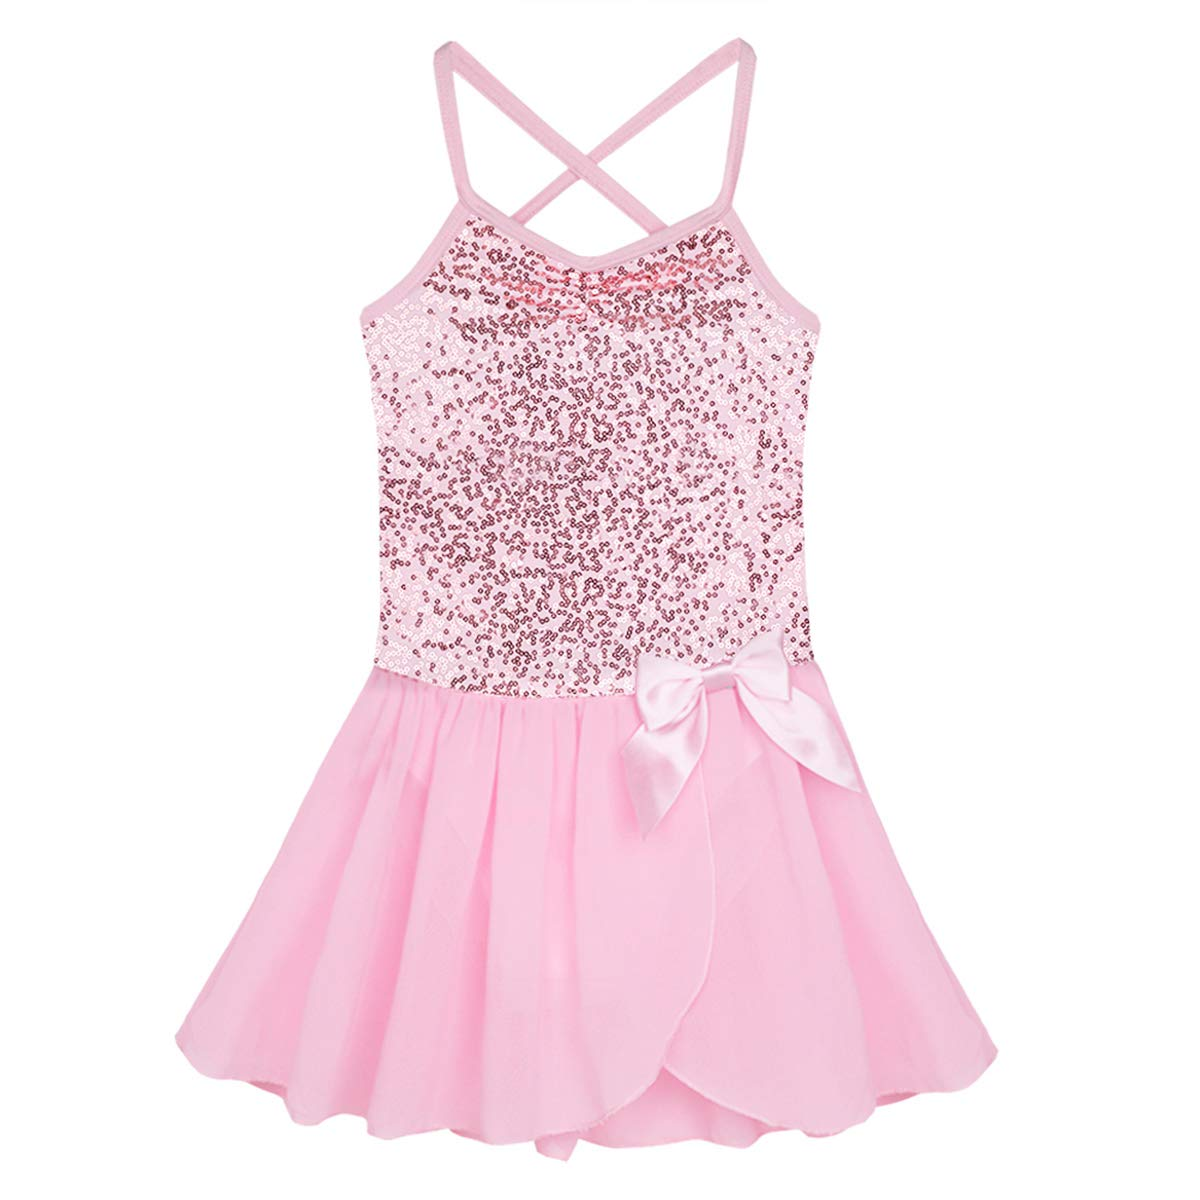 FEESHOW Girls Sequined Camisole Ballet Dress Leotard Chiffon Skirt Sparkly Fairy Dance wear Costumes Pink 5-6 by FEESHOW